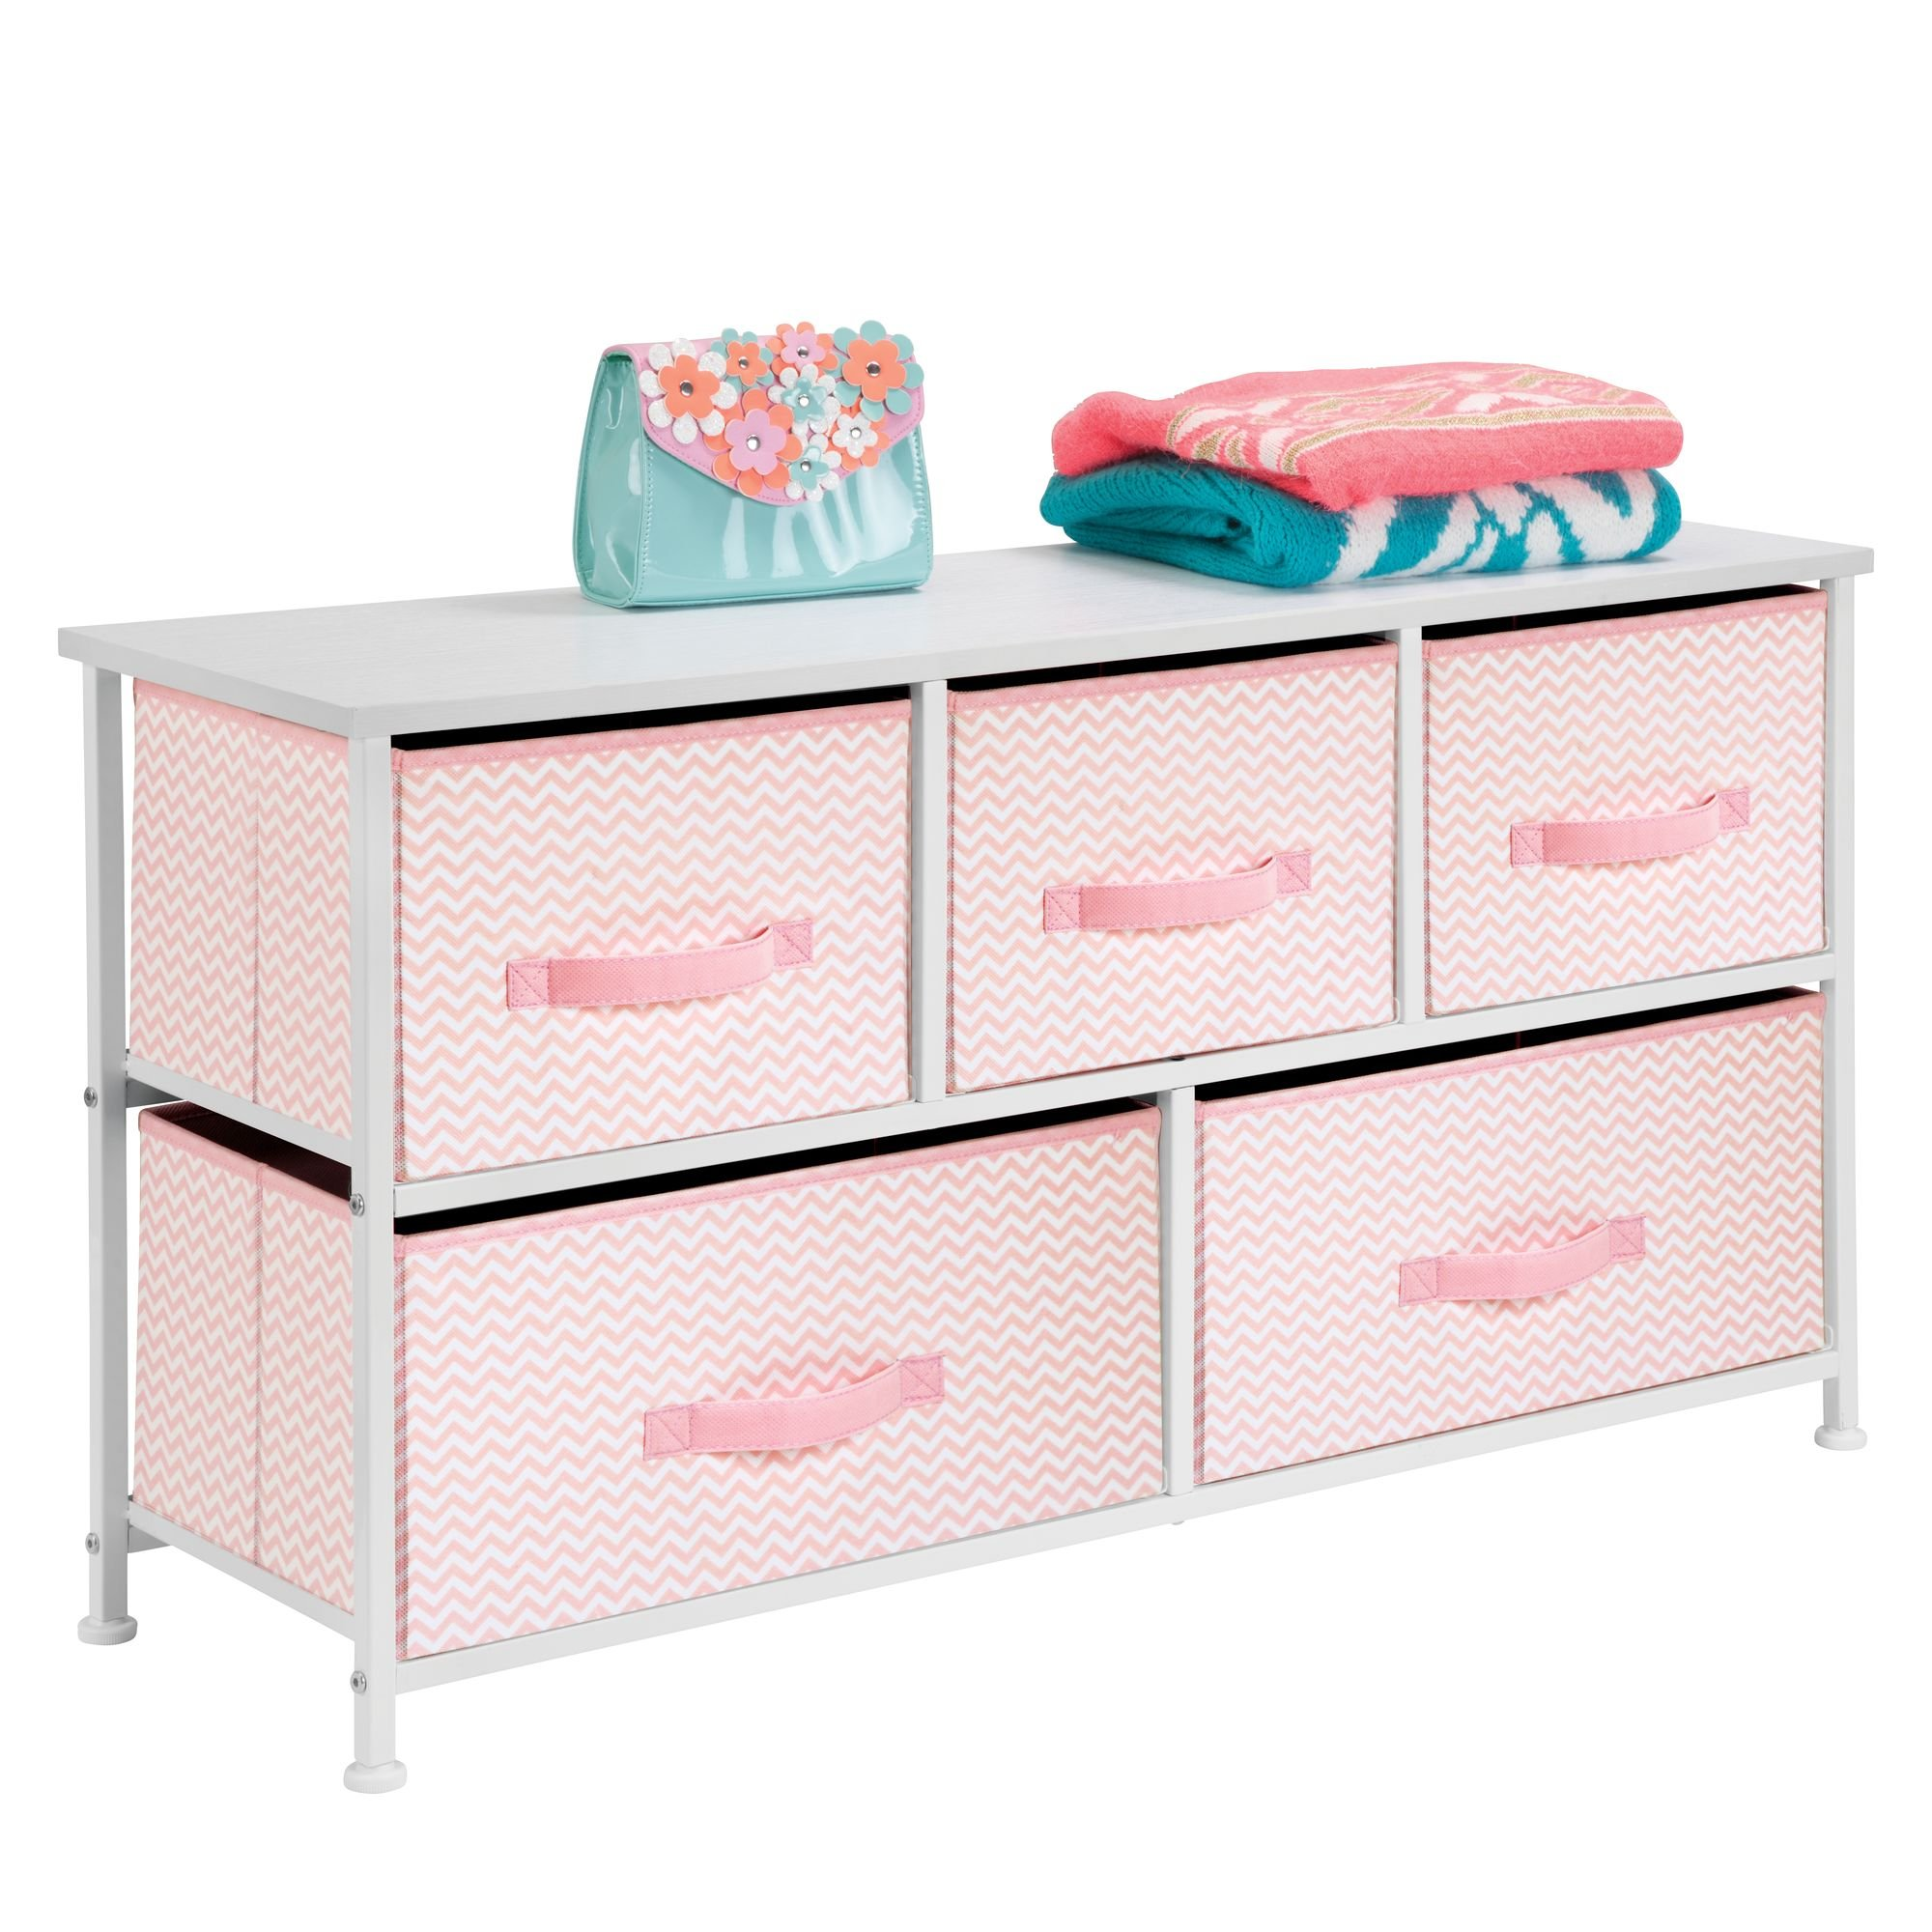 mDesign Extra Wide Dresser Storage Tower - Sturdy Steel Frame, Wood Top, Easy Pull Fabric Bins - Organizer Unit for Bedroom, Hallway, Entryway, Closets - Chevron Print - 5 Drawers, Pink/White